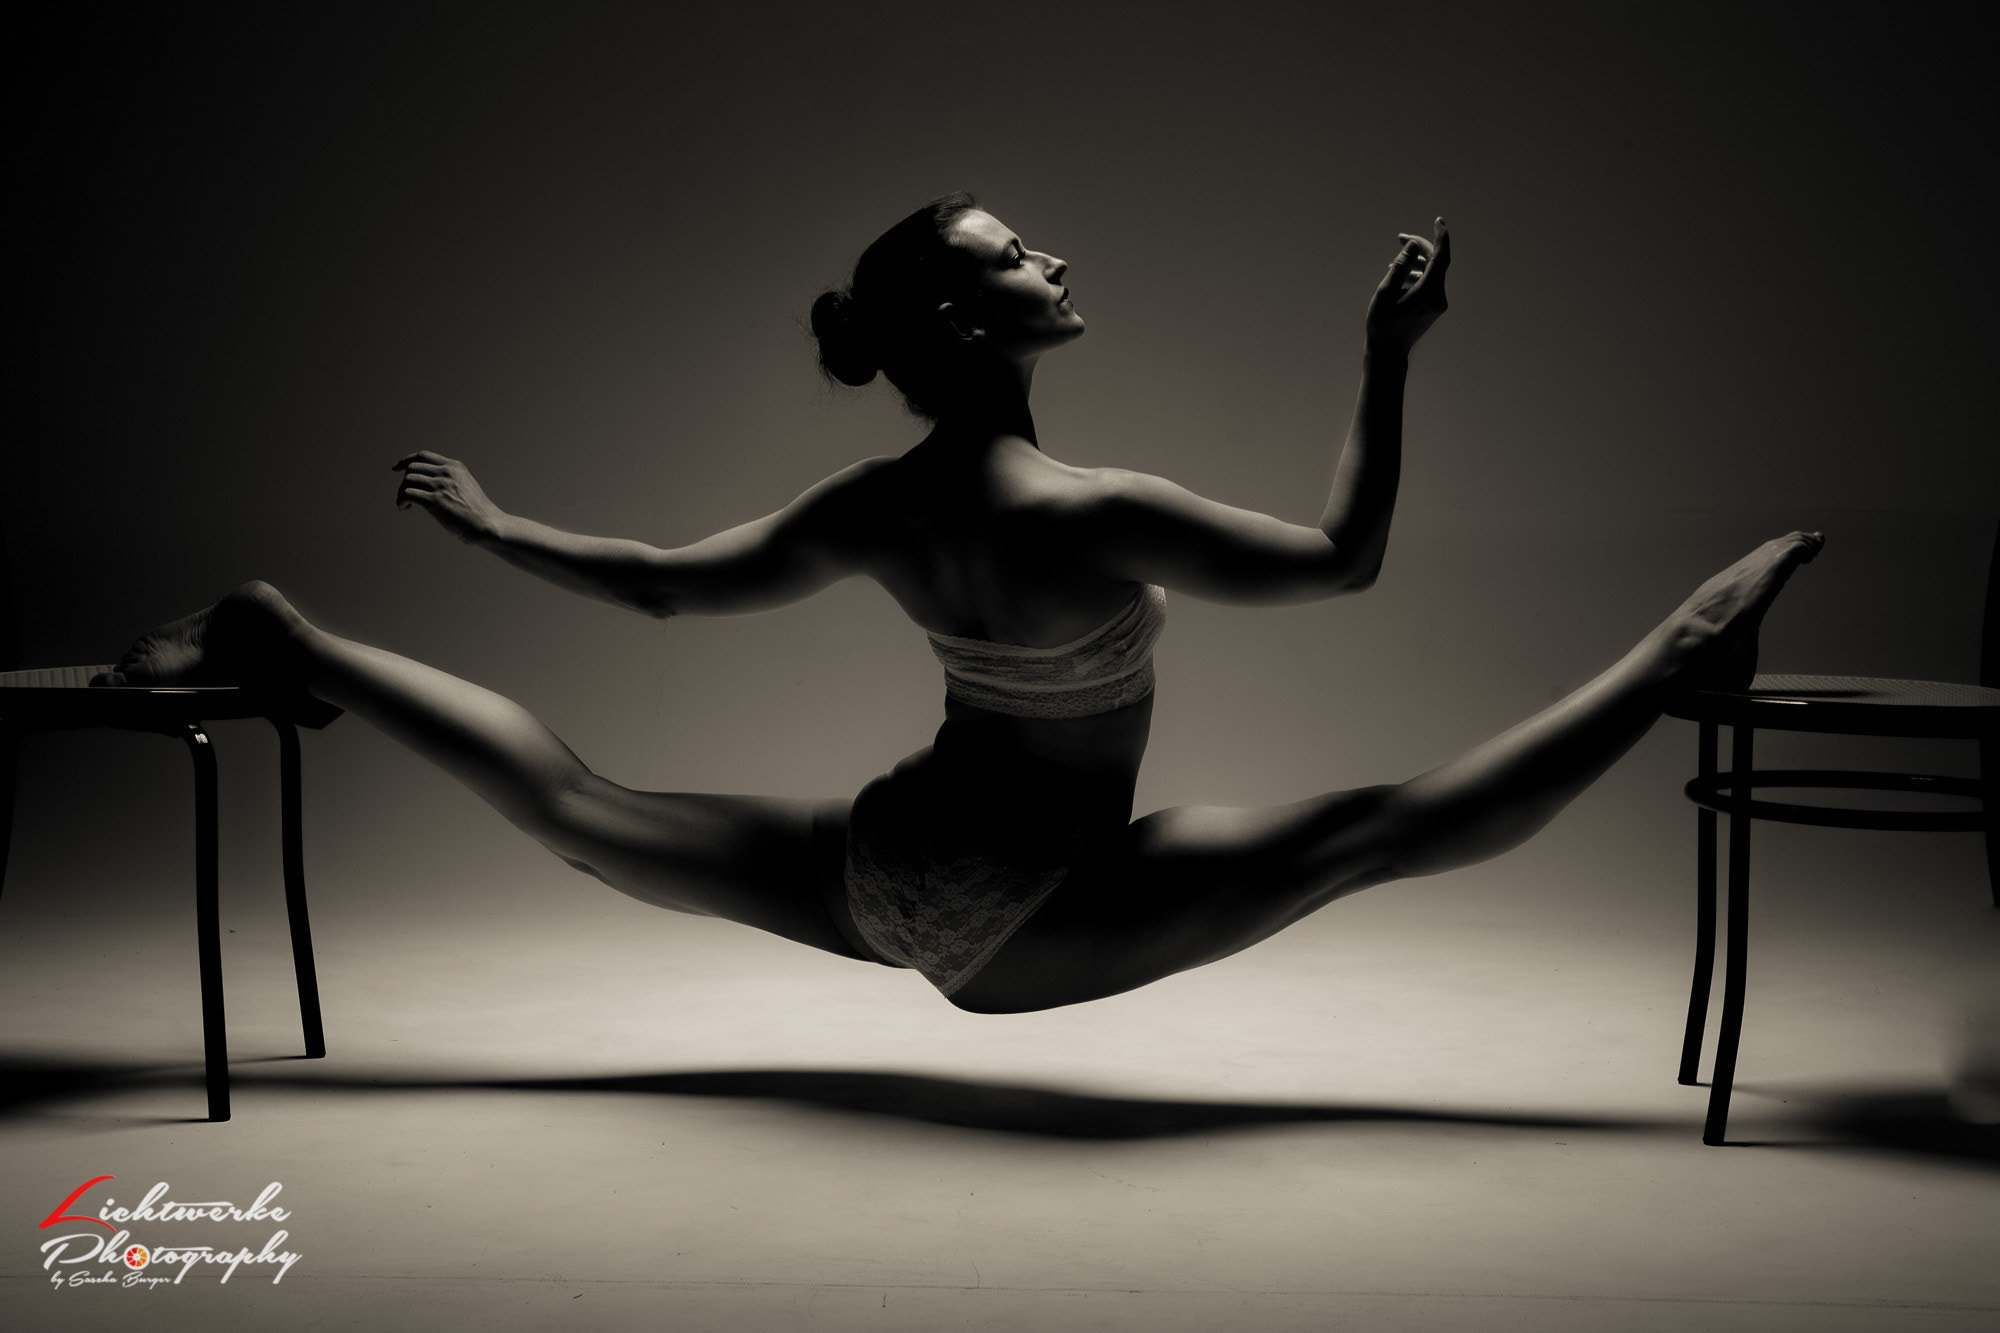 People 2000x1333 spread legs women flexible legs women indoors sepia barefoot pointed toes stools contortionists splits